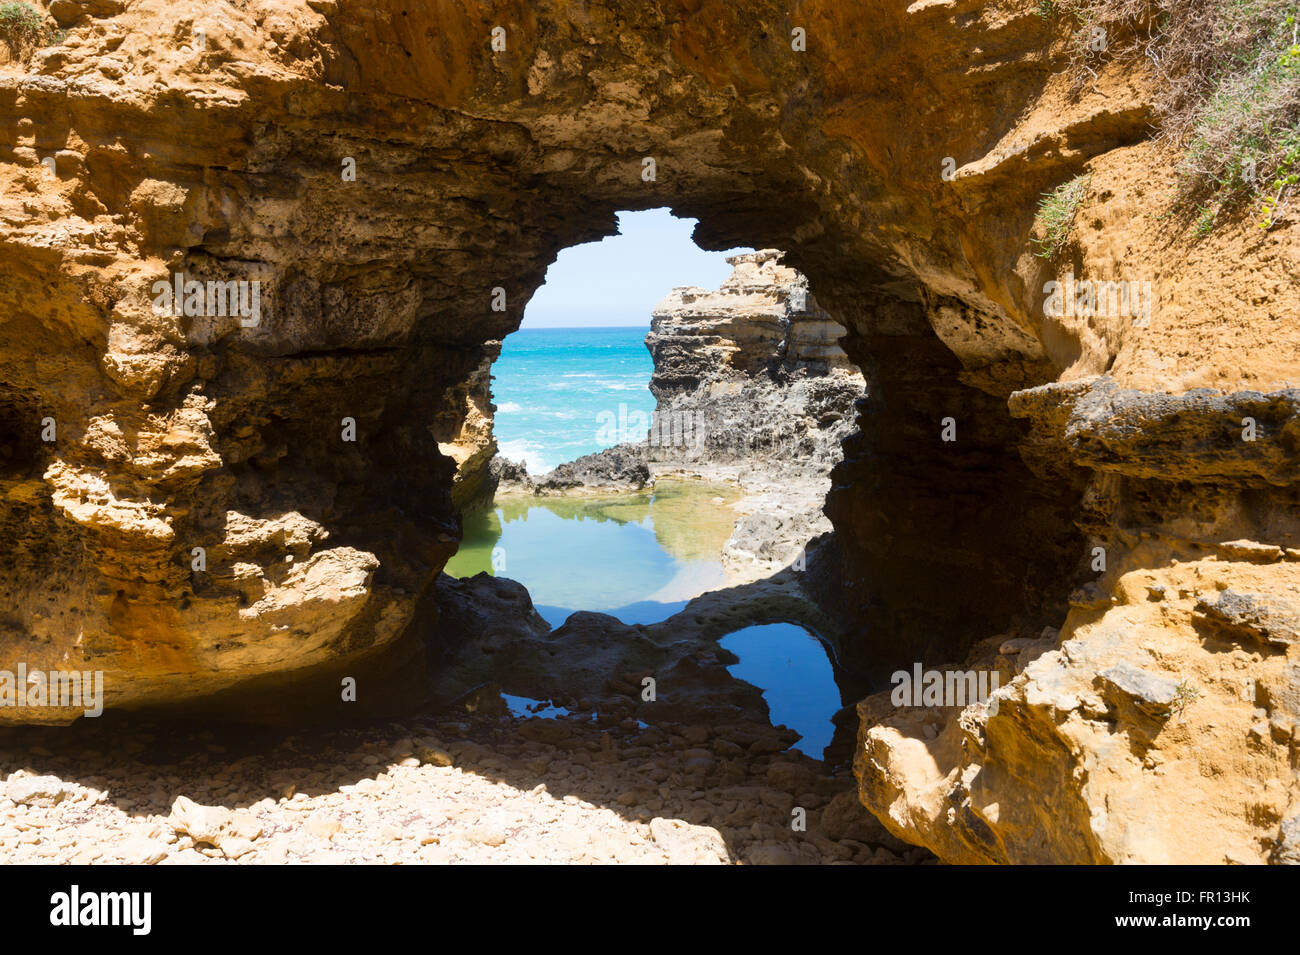 The Grotto, Great Ocean Road, Victoria, VIC, Australia - Stock Image